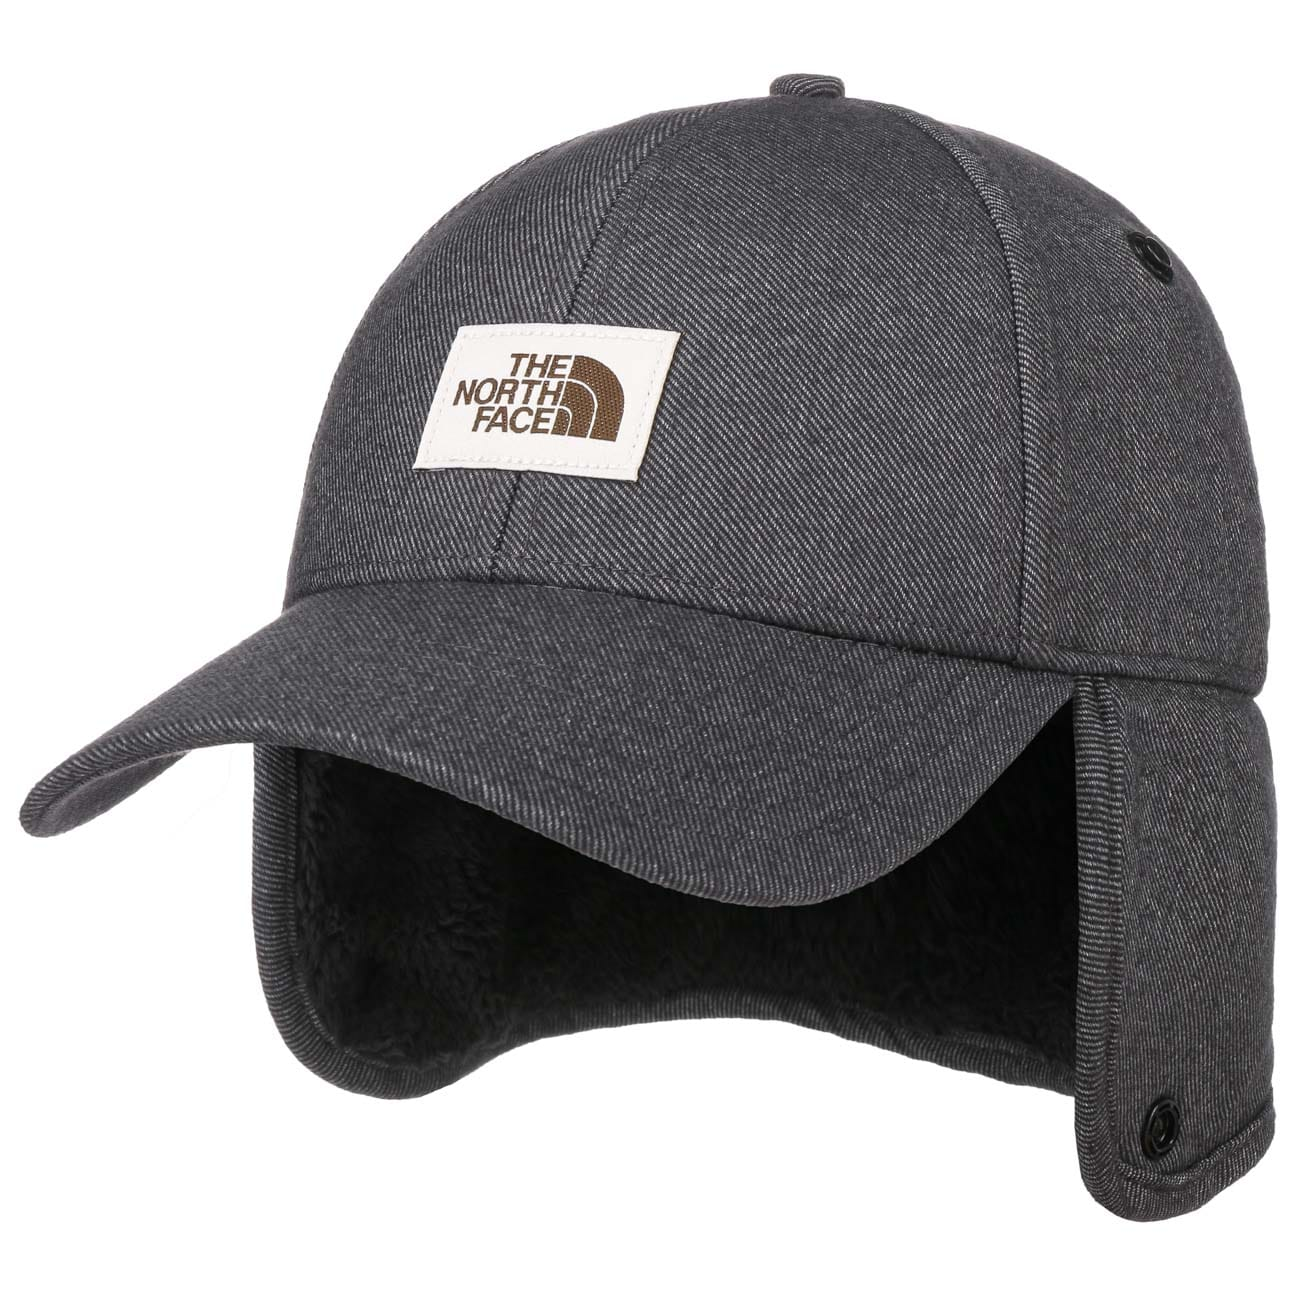 Casquette Campshire by The North Face  casquette en coton